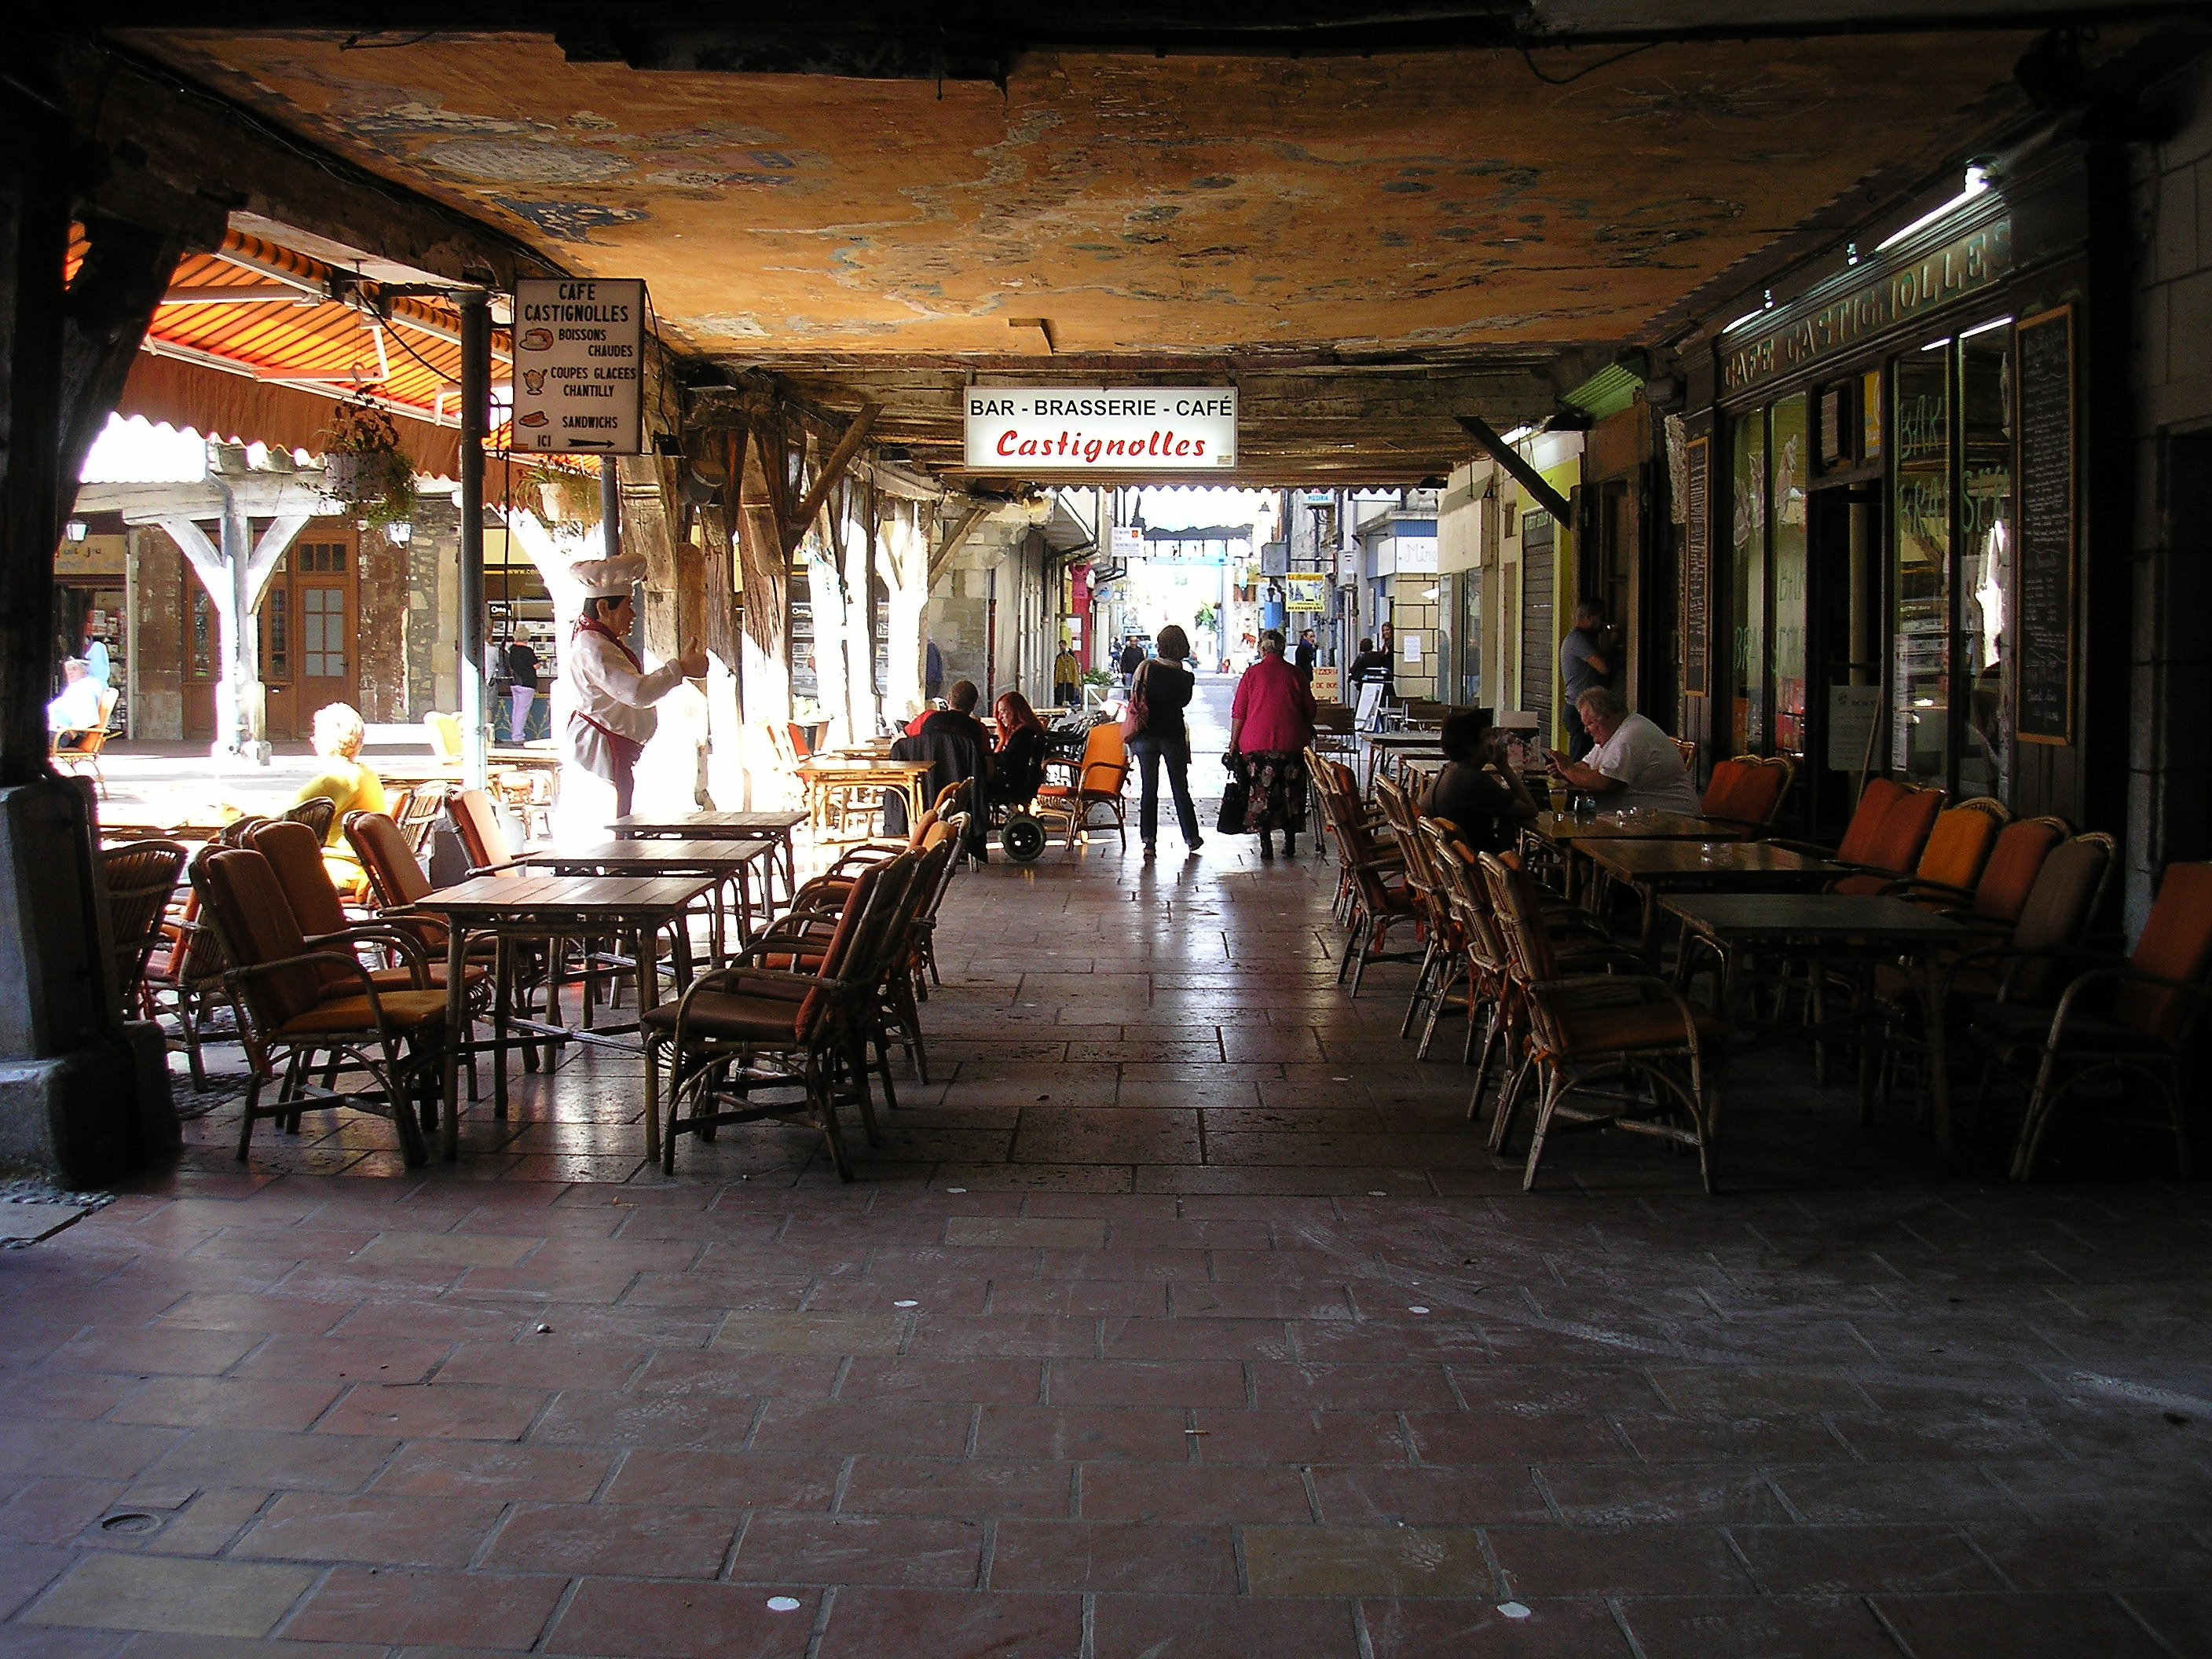 Arcade around the town square